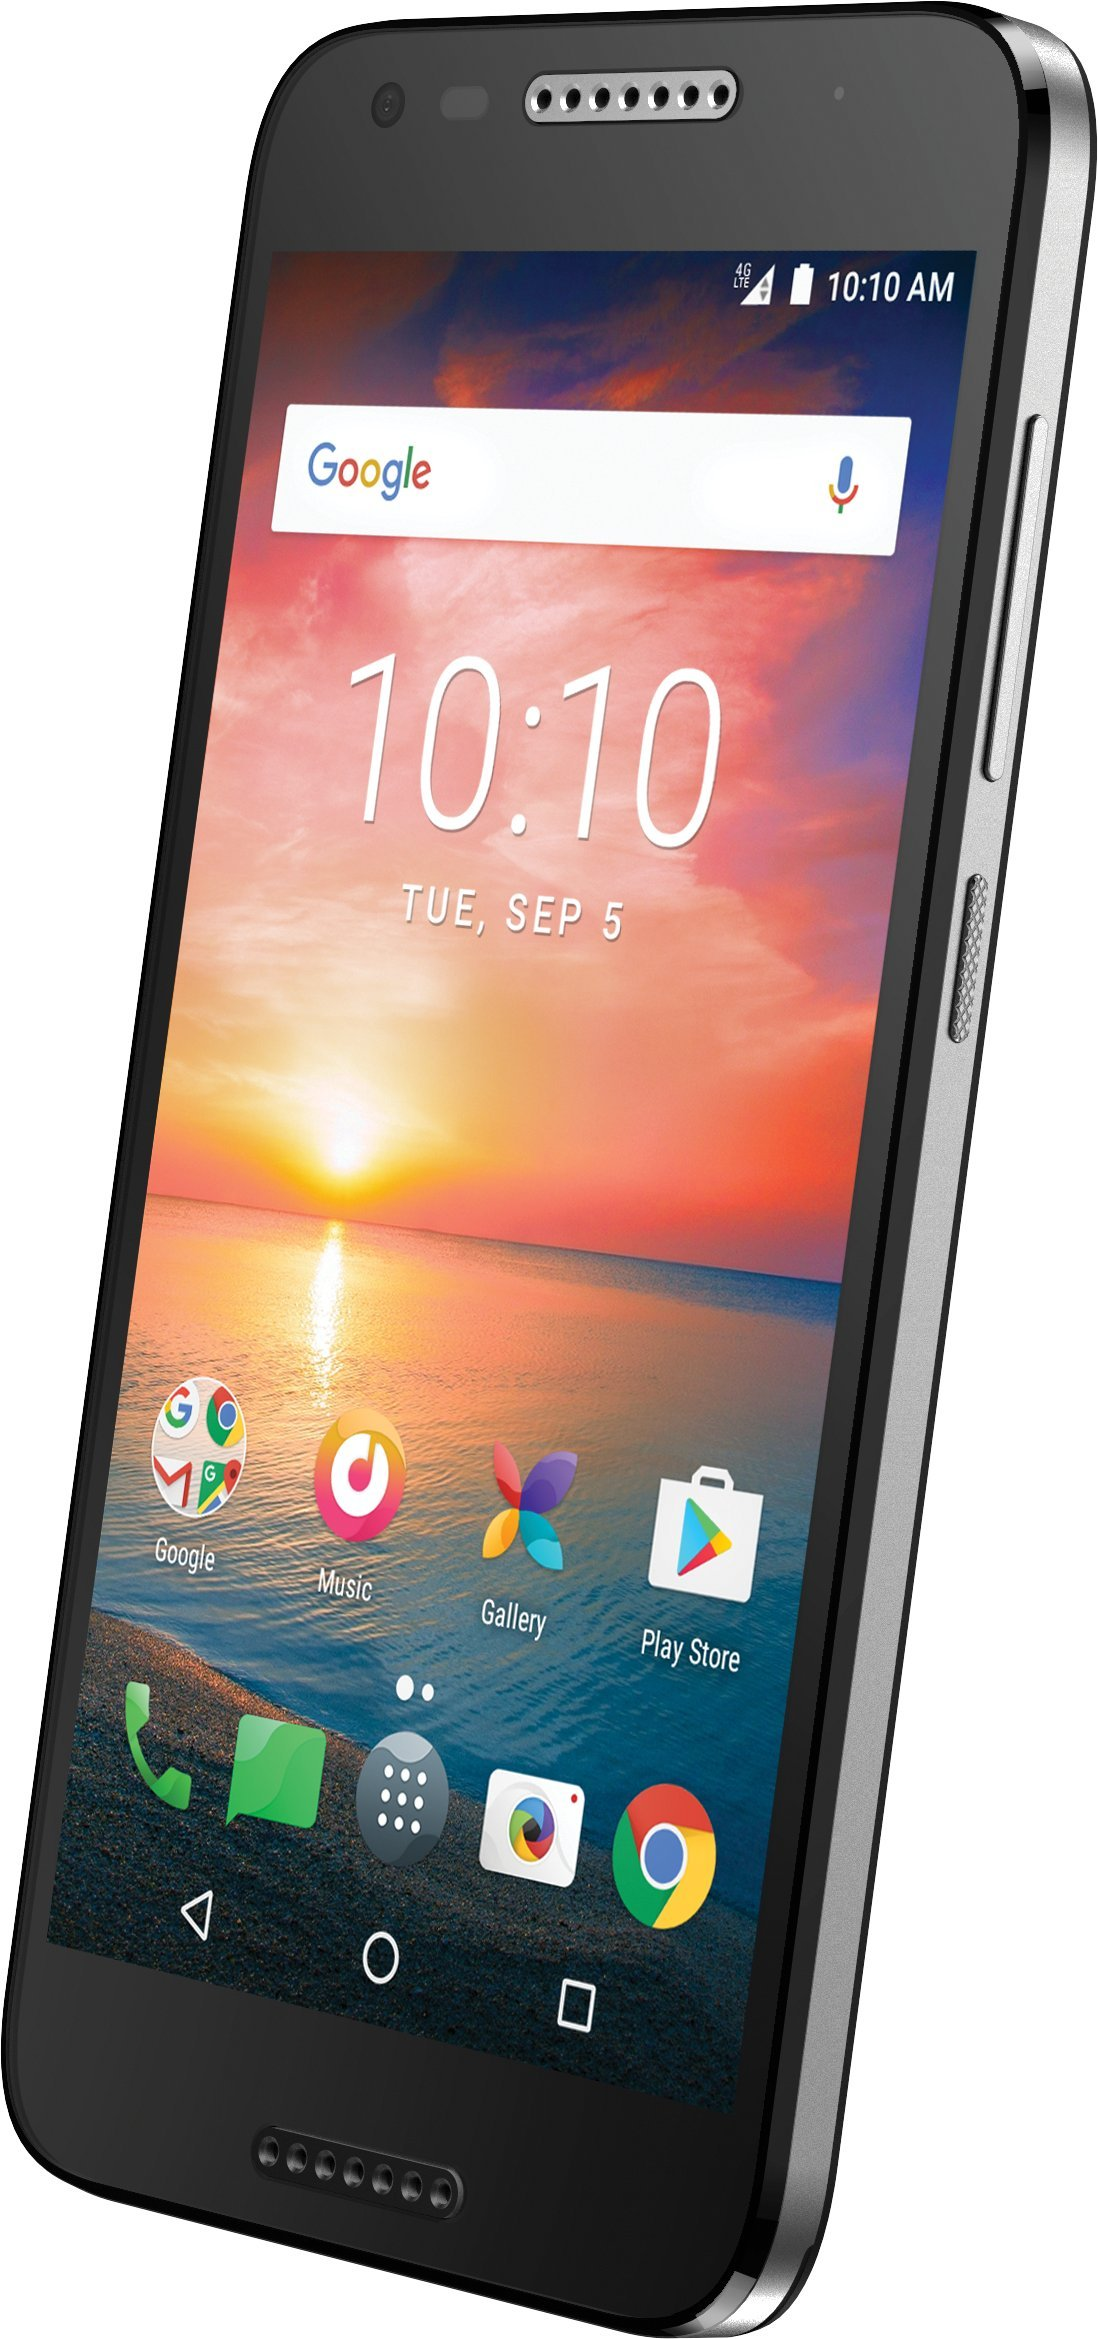 TCL LX1 16GB 5.0 inch Premium Smartphone with Vibrant HD Display 2GB RAM Quad-Core– Slim-line 4G LTE Unlocked Android Phone with 8MP Camera – All GSM Carriers + 1 Year Full Manufacturer Warranty